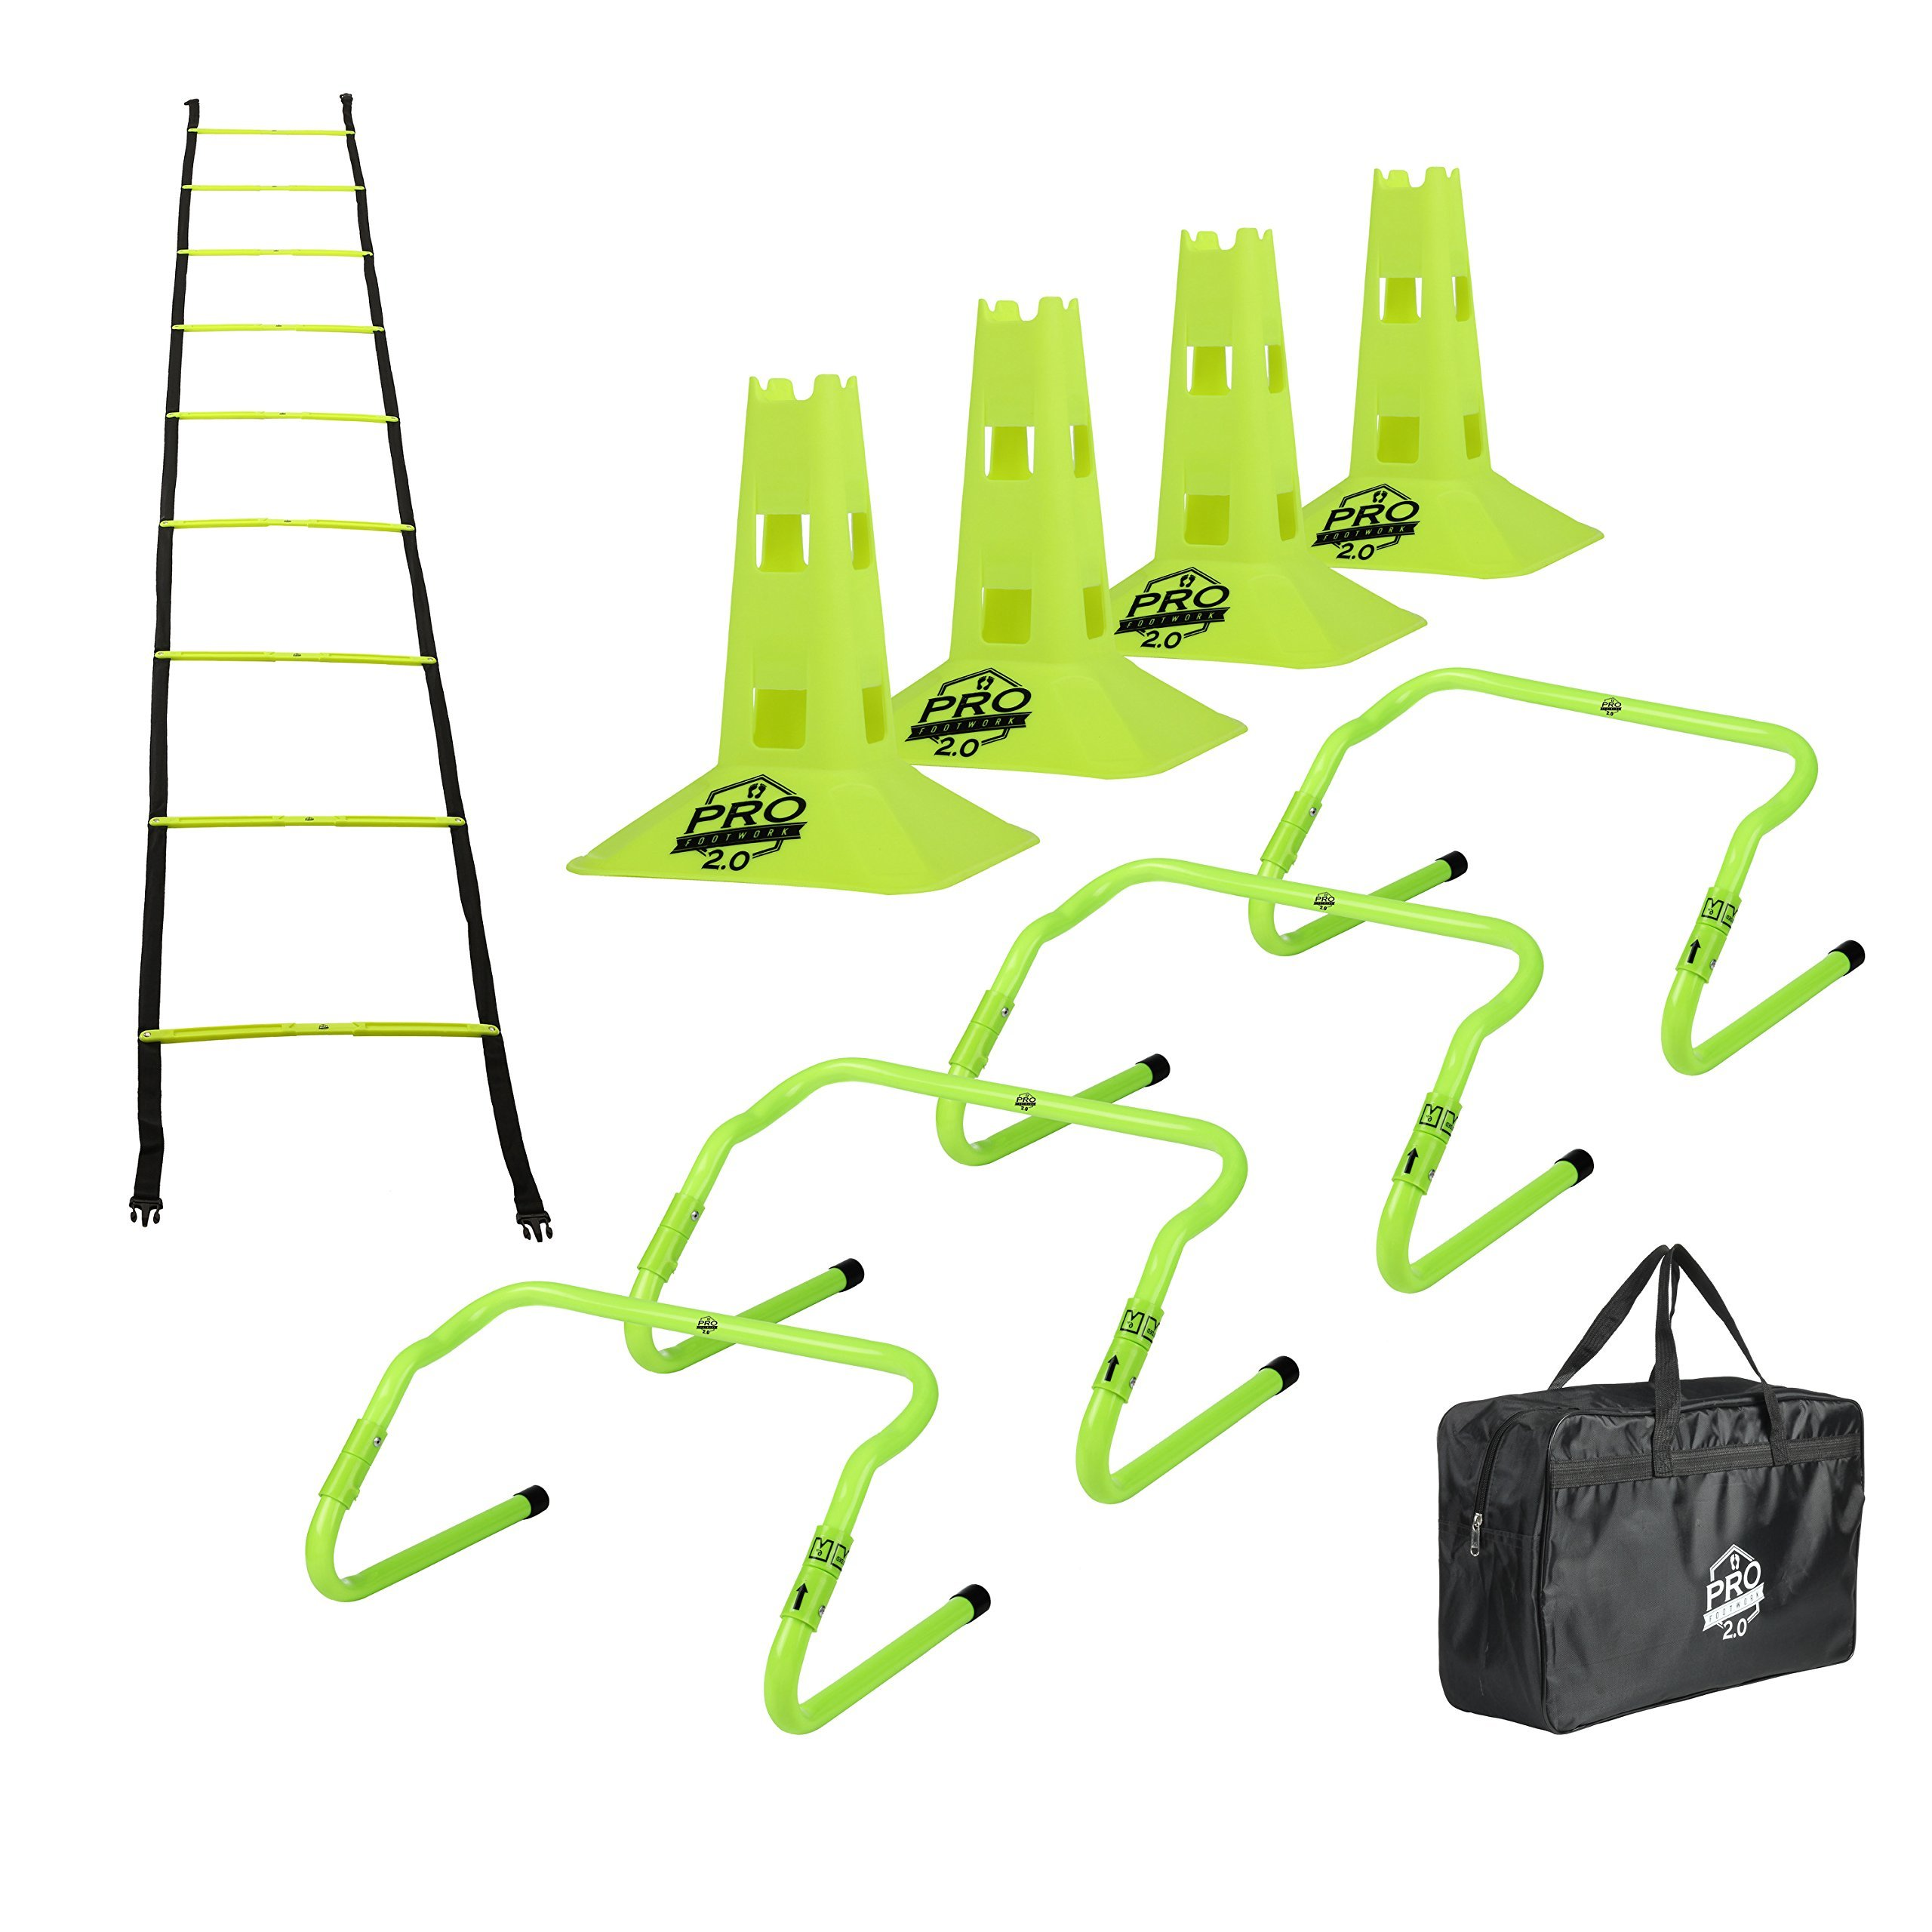 Pro Footwork Agility Ladder and Hurdle Training Set with Carry Bag - Speed Training Exercise Practice for Soccer, Football & All Sports - Adjustable Heights 6'', 9'' & 12'' (Green-Pro footwork 2.0)